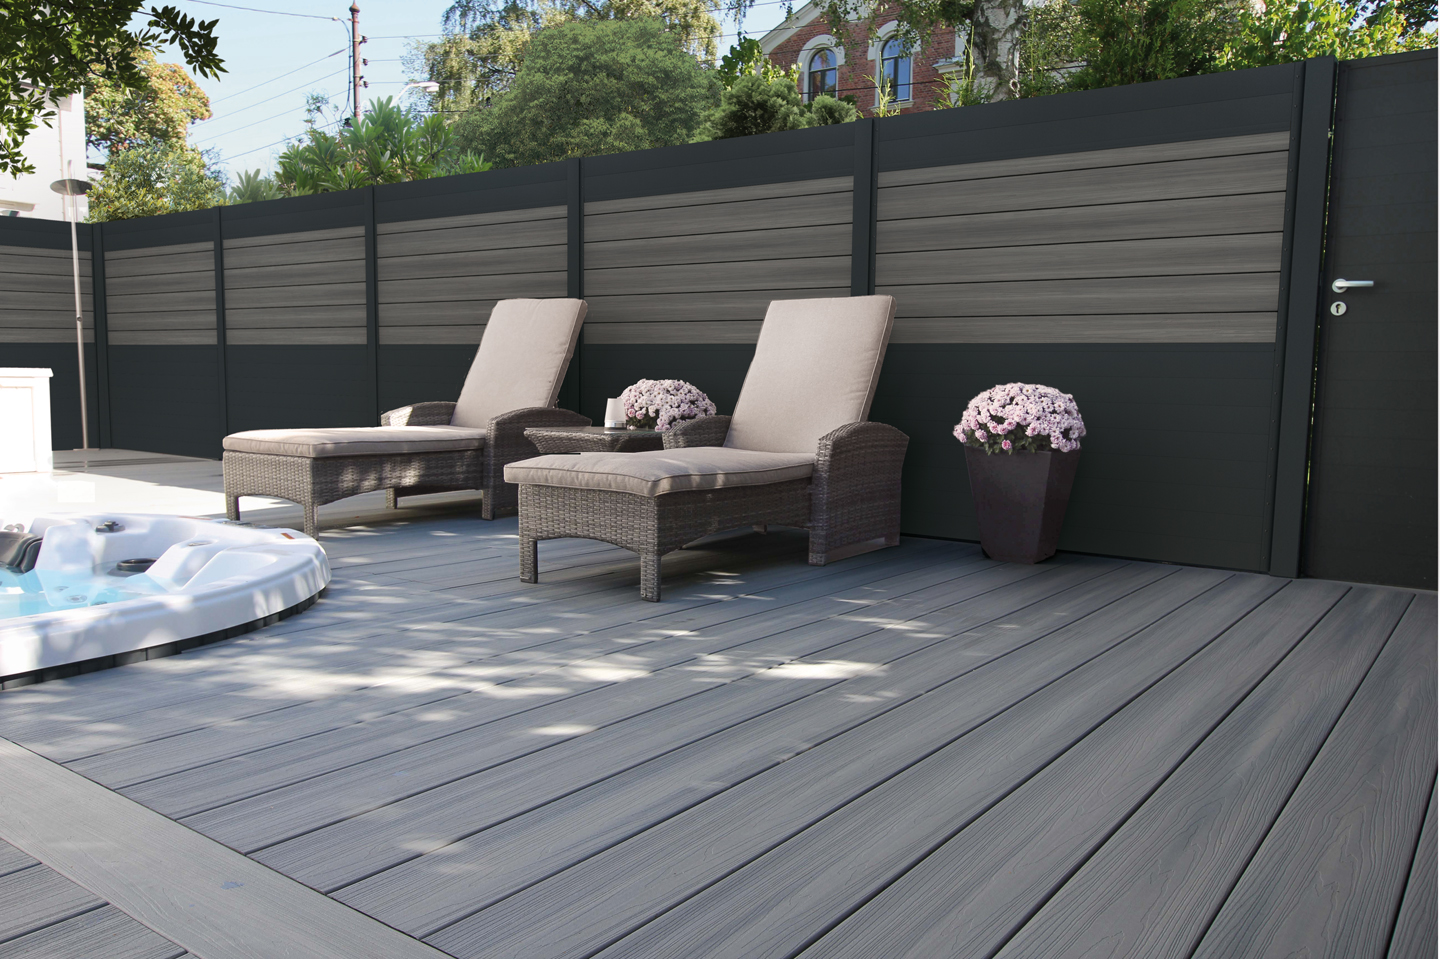 LuxFence Antraciet & Castle gray 6x